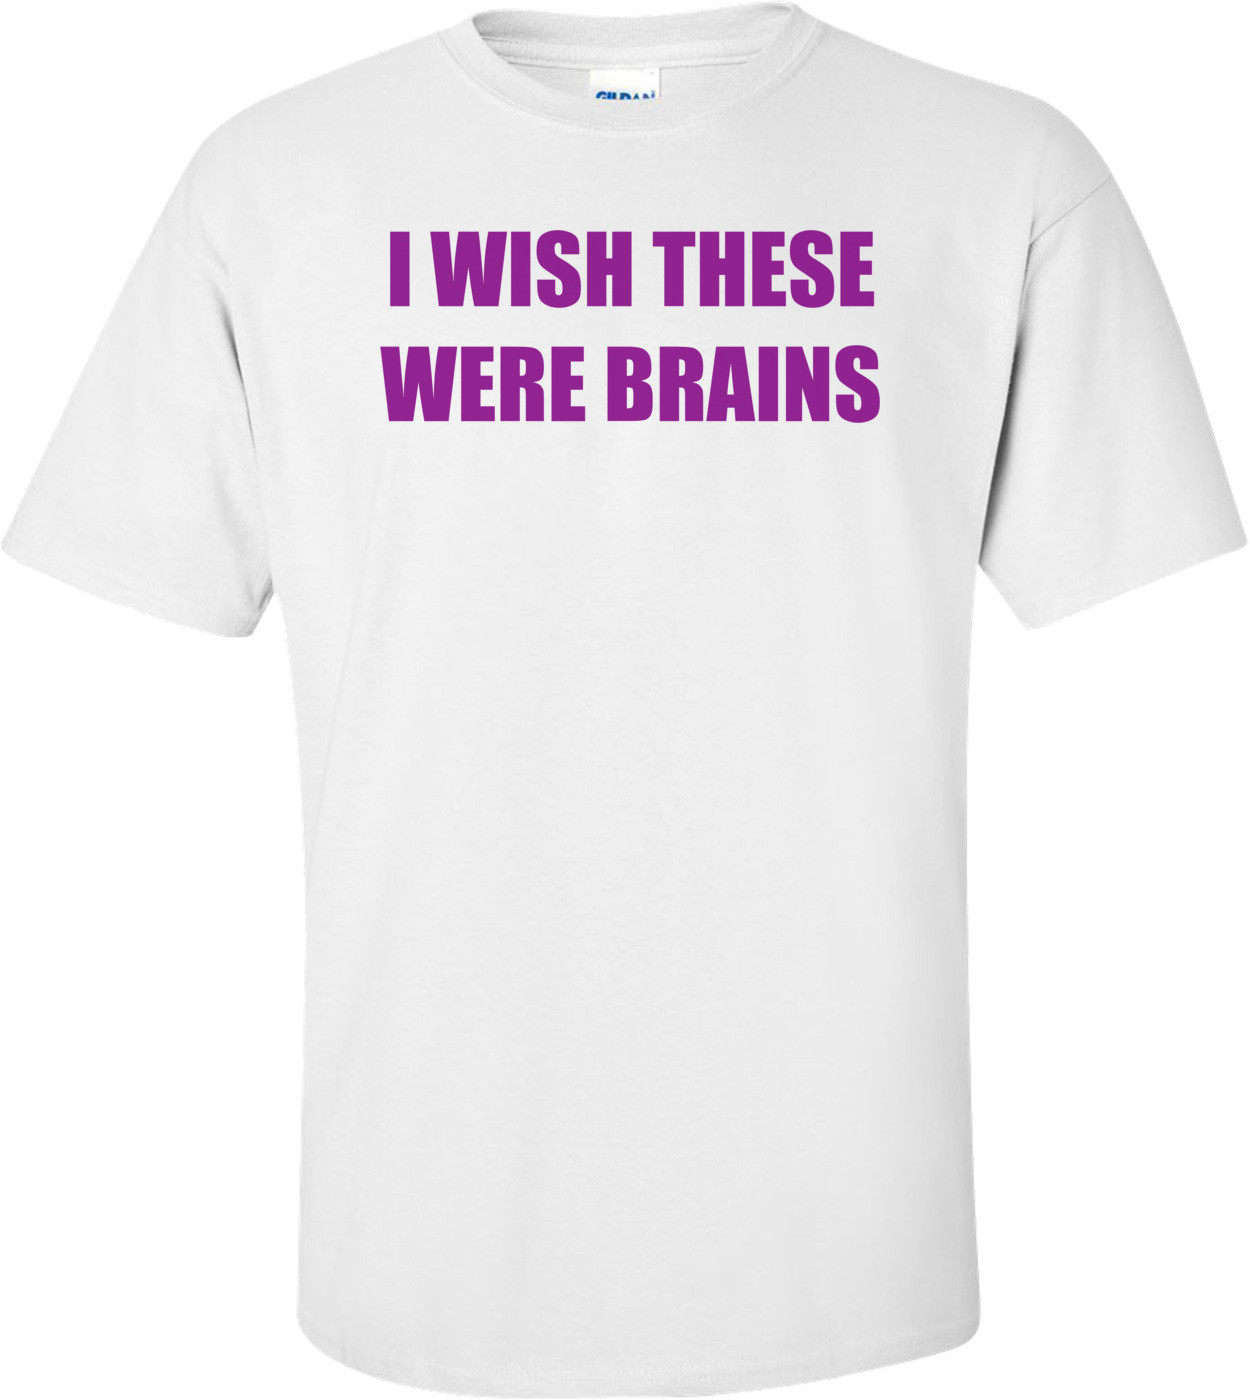 I Wish These Were Brains Shirt